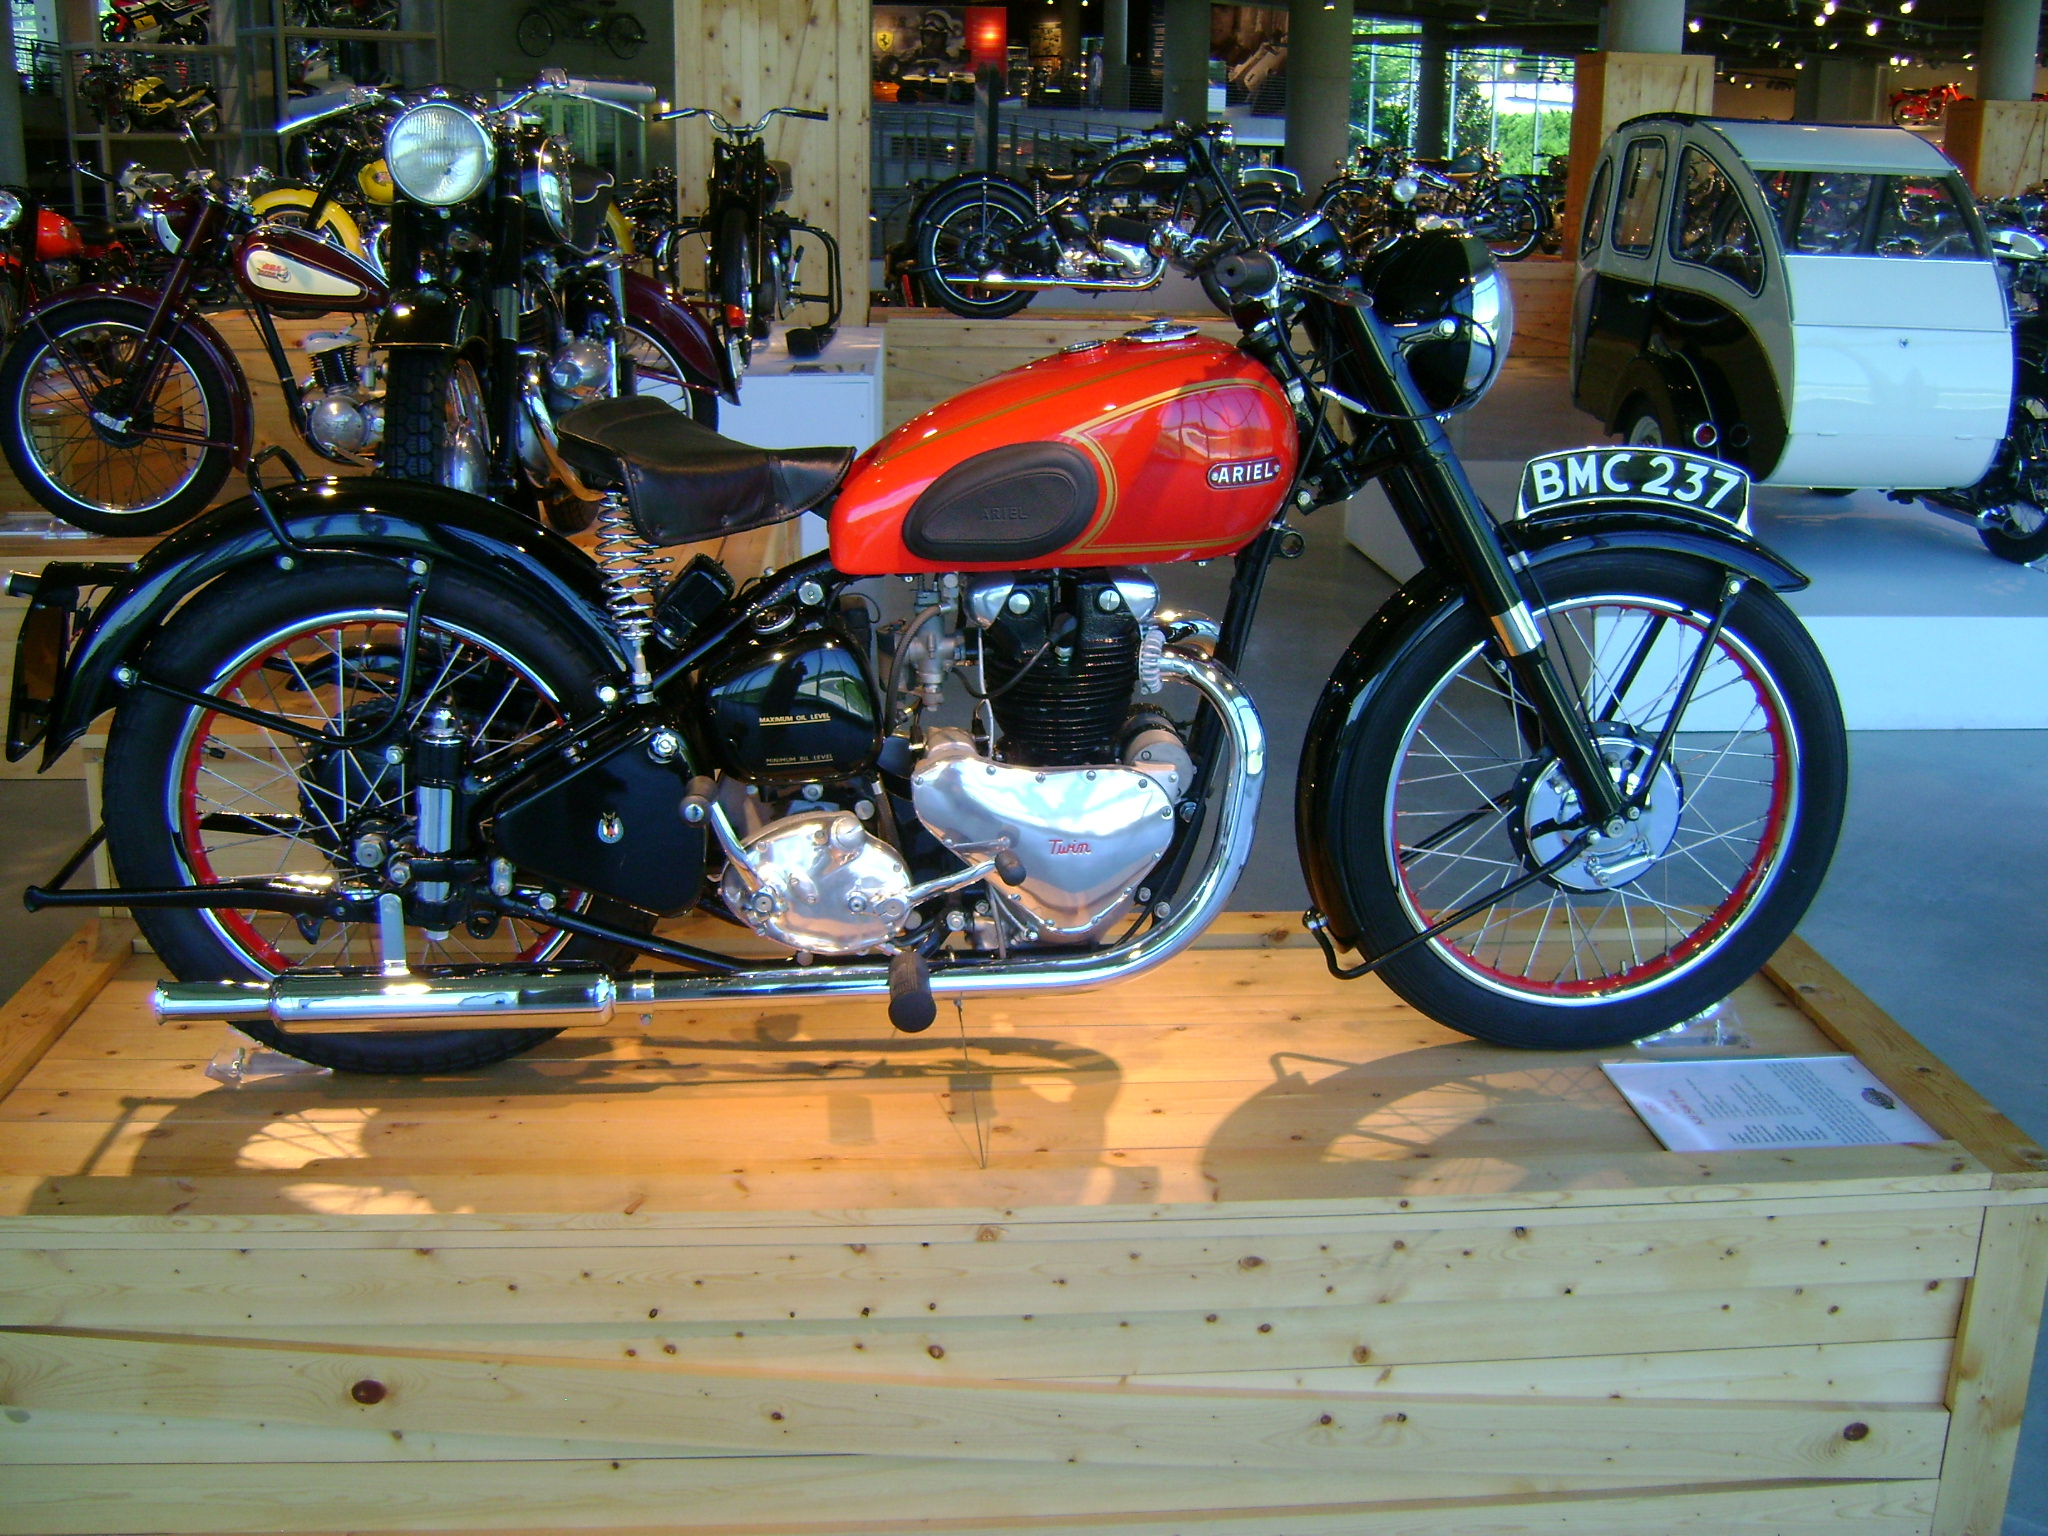 Wiring Schematic Honda Msx125 Auto Electrical Diagram 1952 Gmc Pickup Motorcycles 125 X Elite